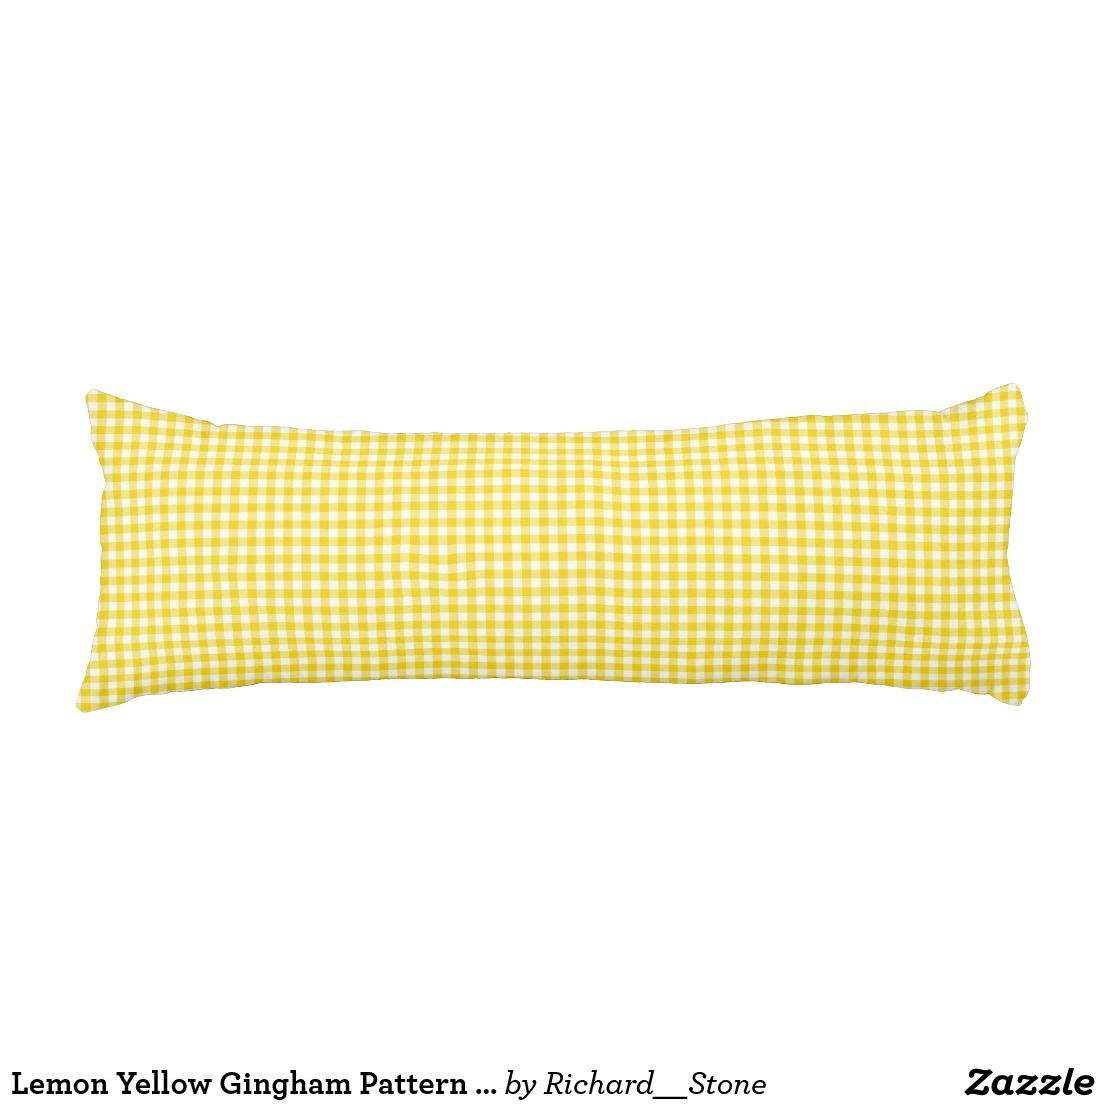 Lemon Yellow Gingham Pattern Body Pillow |  :  Lemon Yellow Gingham Pattern Body Pillow